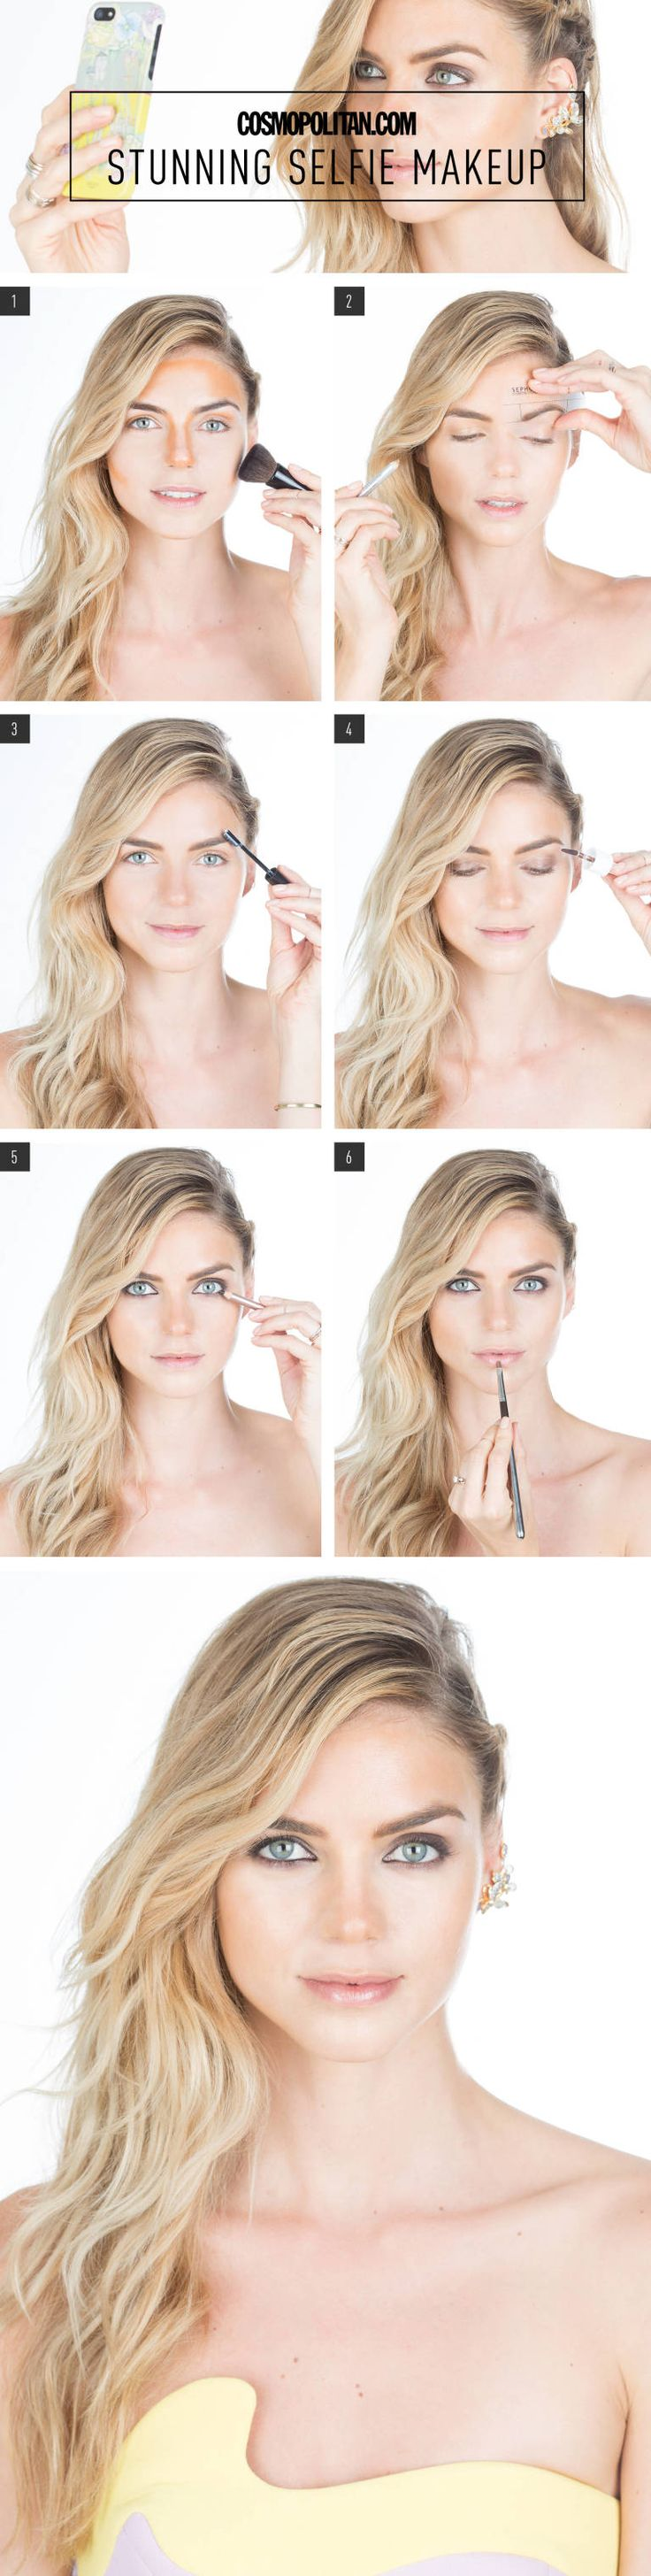 Cosmopolitan.com partnered with NBC's A to Z Guide to Dating to create the ultimate stunning selfie makeup tutorial with the help of makeup artist Lauren Cosenza. Ahead is the how-to. Here's to flawless pics of you!